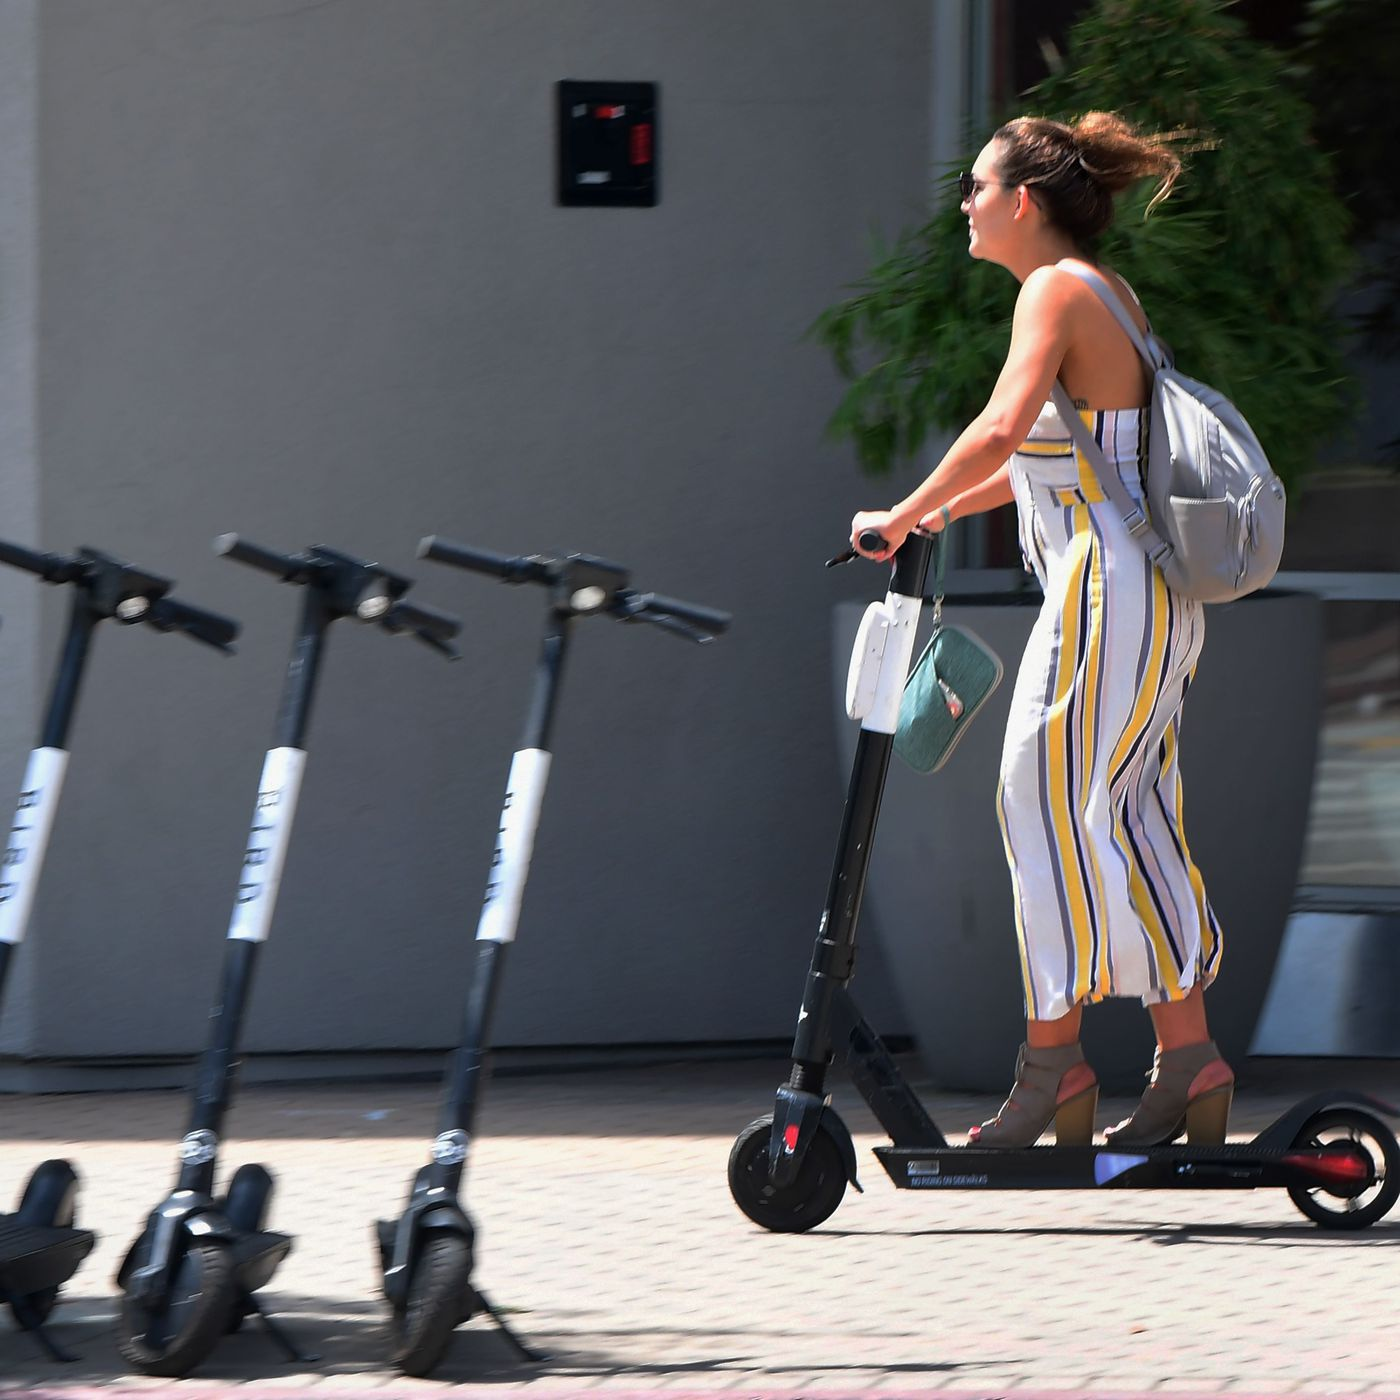 Nyc Among Top 10 U S Cities Best Suited For E Scooter E Bike Trips Report Curbed Ny